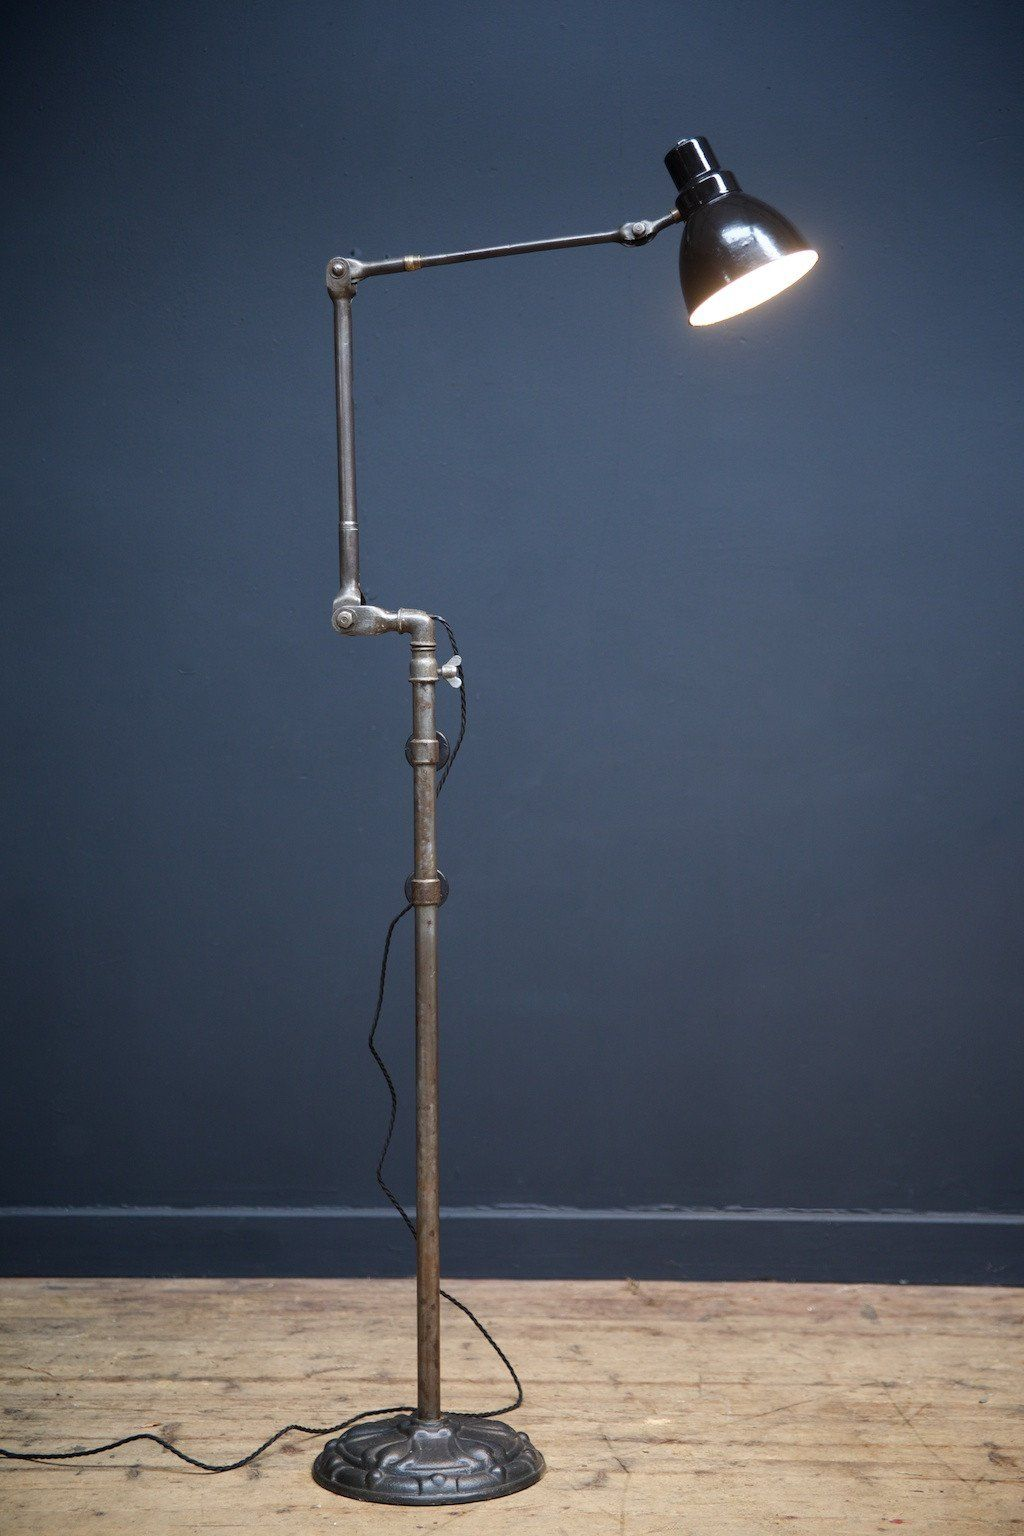 An industrial floor lamp cast iron base with multiple joints to the an industrial floor lamp cast iron base with multiple joints to the steel upright mozeypictures Image collections